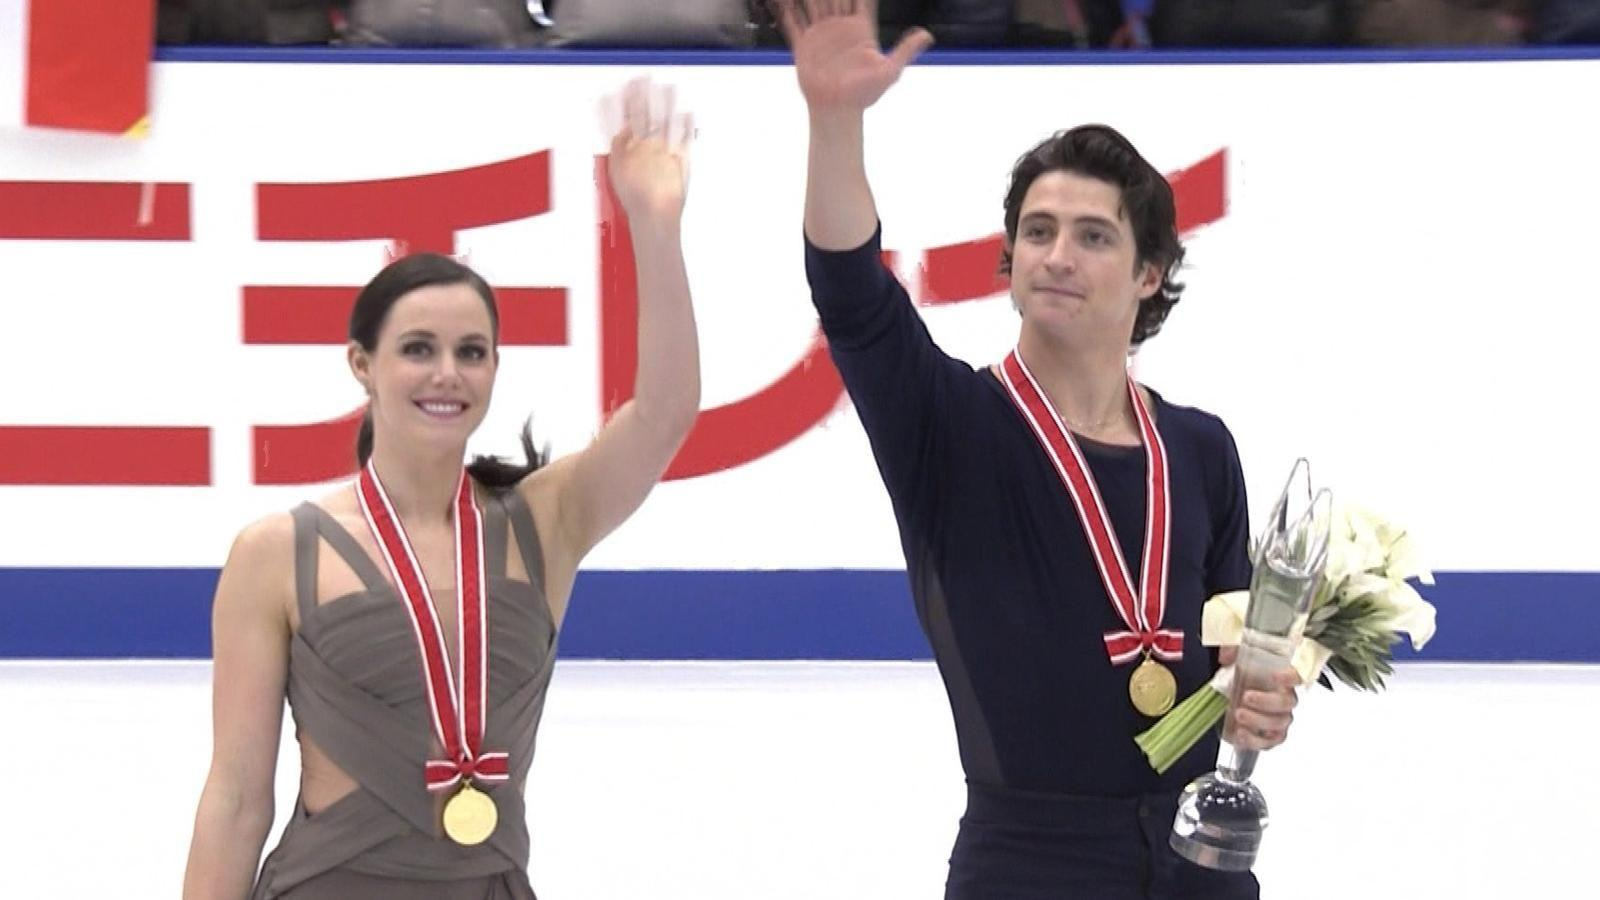 VIDEO - Tessa Virtue and Scott Moir break world record score to ...